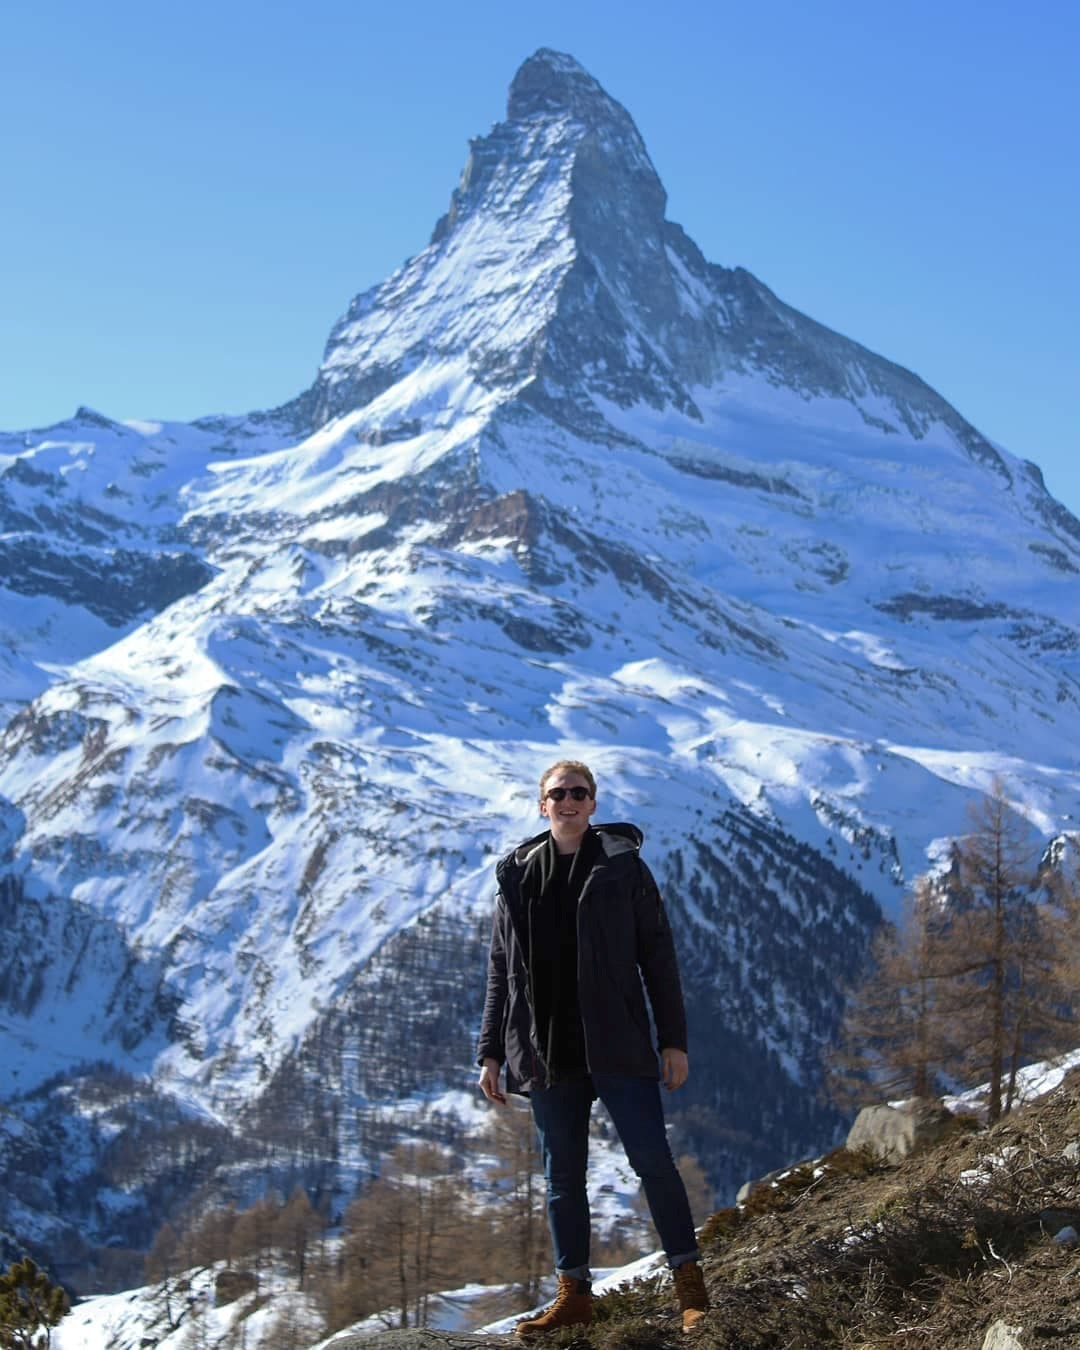 4. 2020. Matterhorn. I love Switzerland and how easy it is to get outdoors and explore.